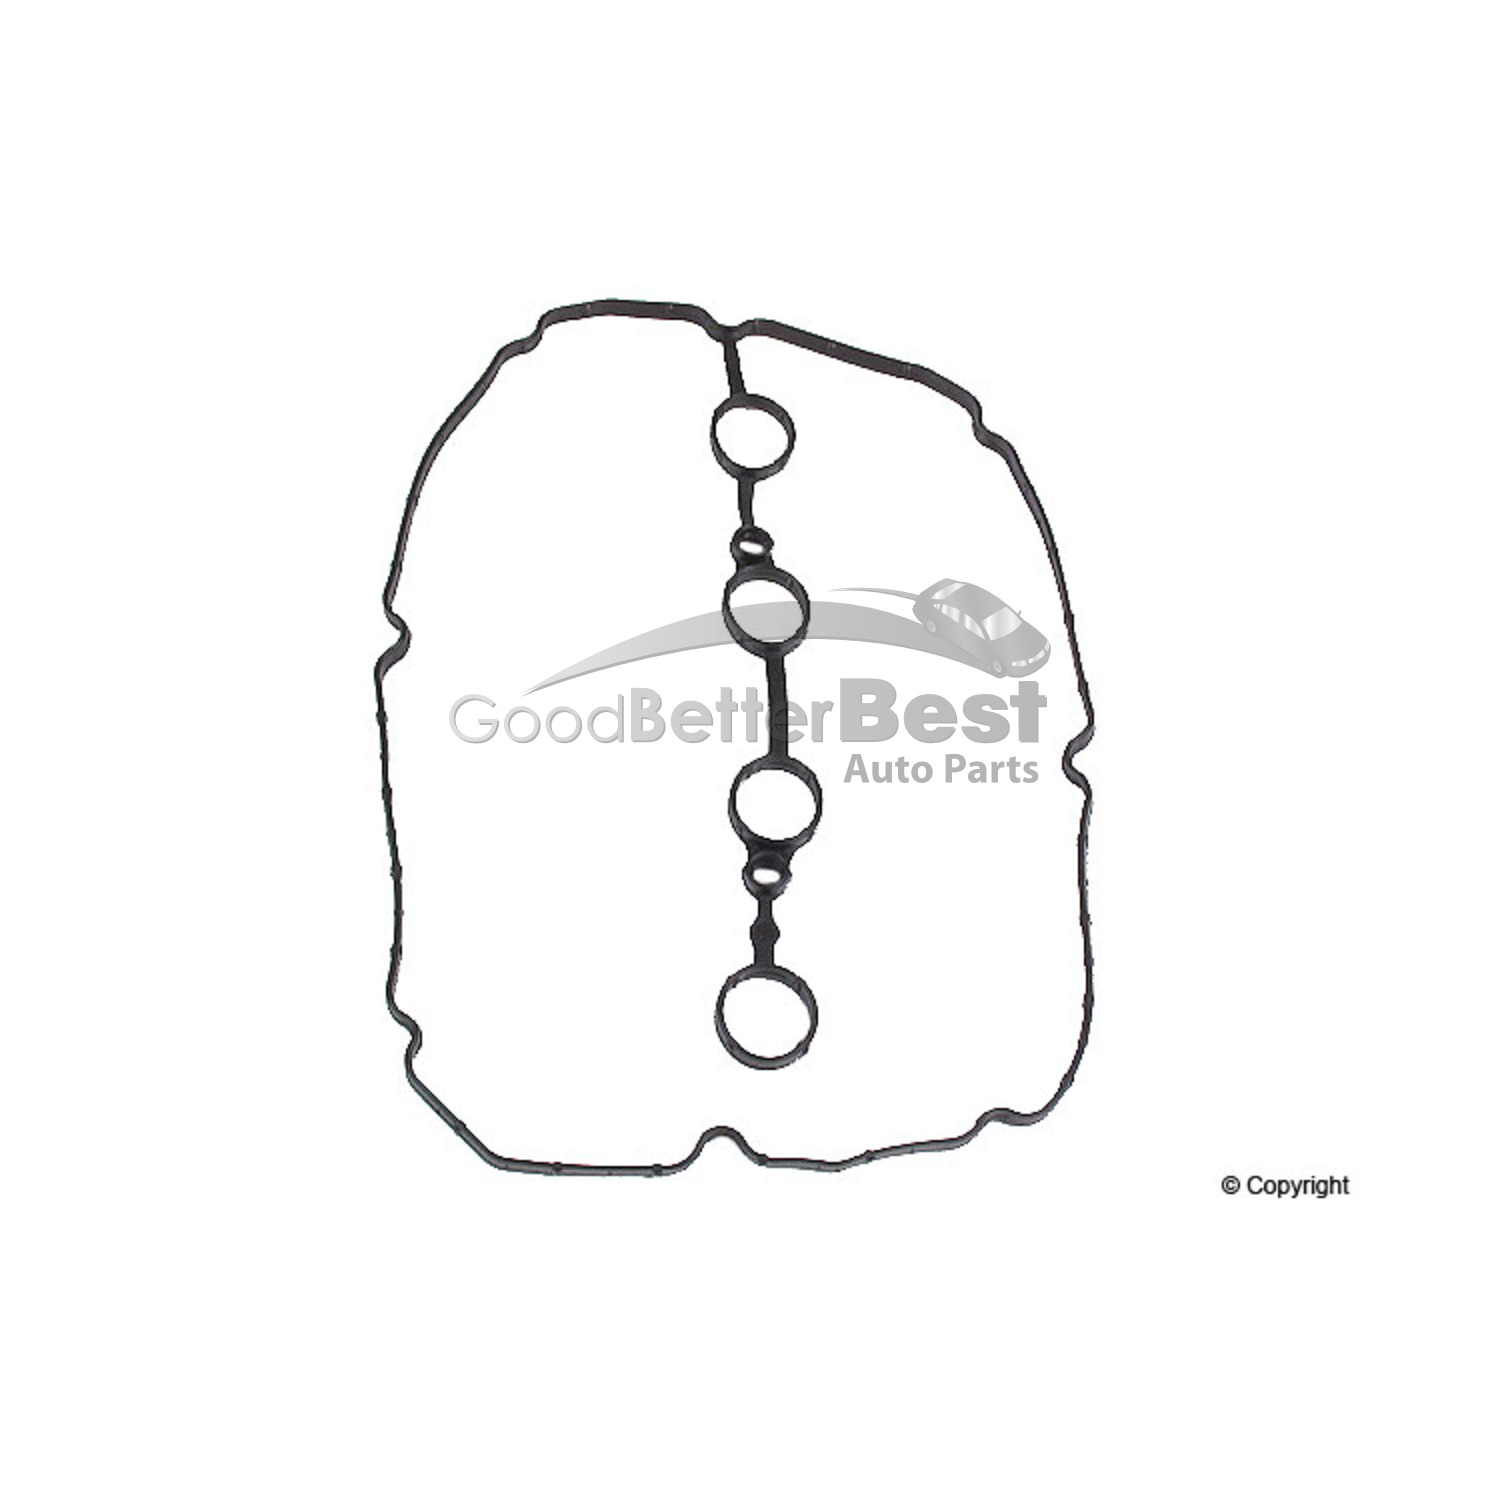 New Parts Mall Engine Valve Cover Gasket X001 For